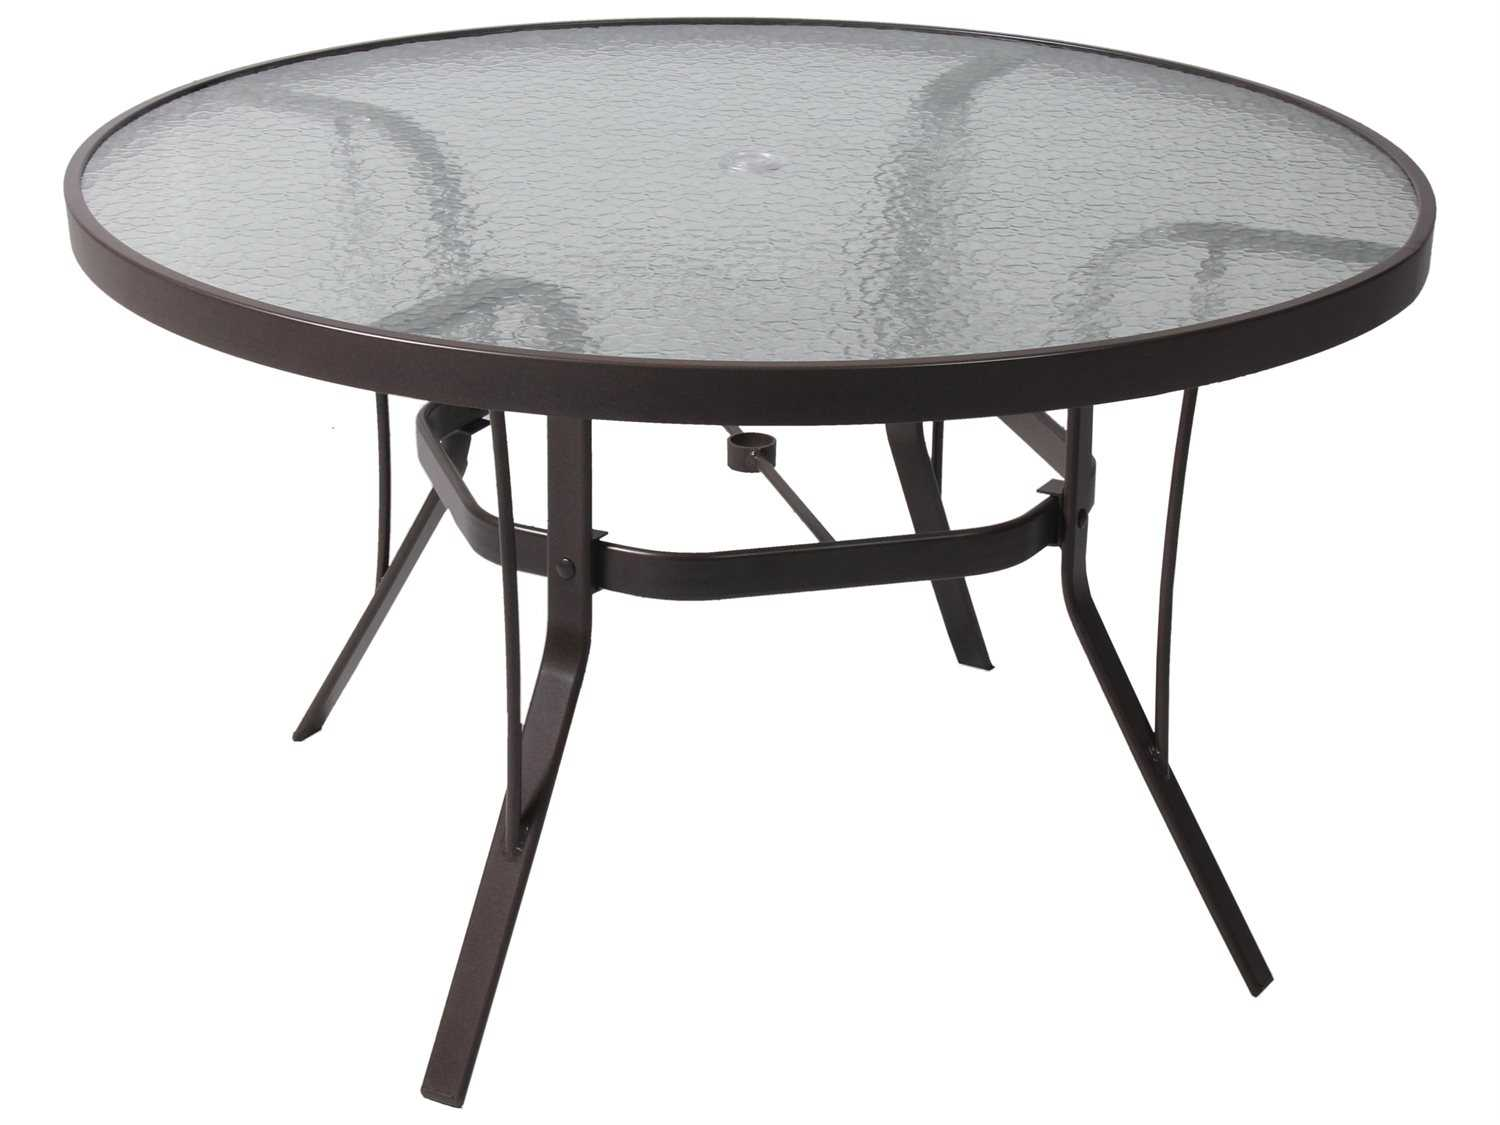 Suncoast Cast Aluminum Round Glass Top Dining Table KD - 60 inch round aluminum patio table